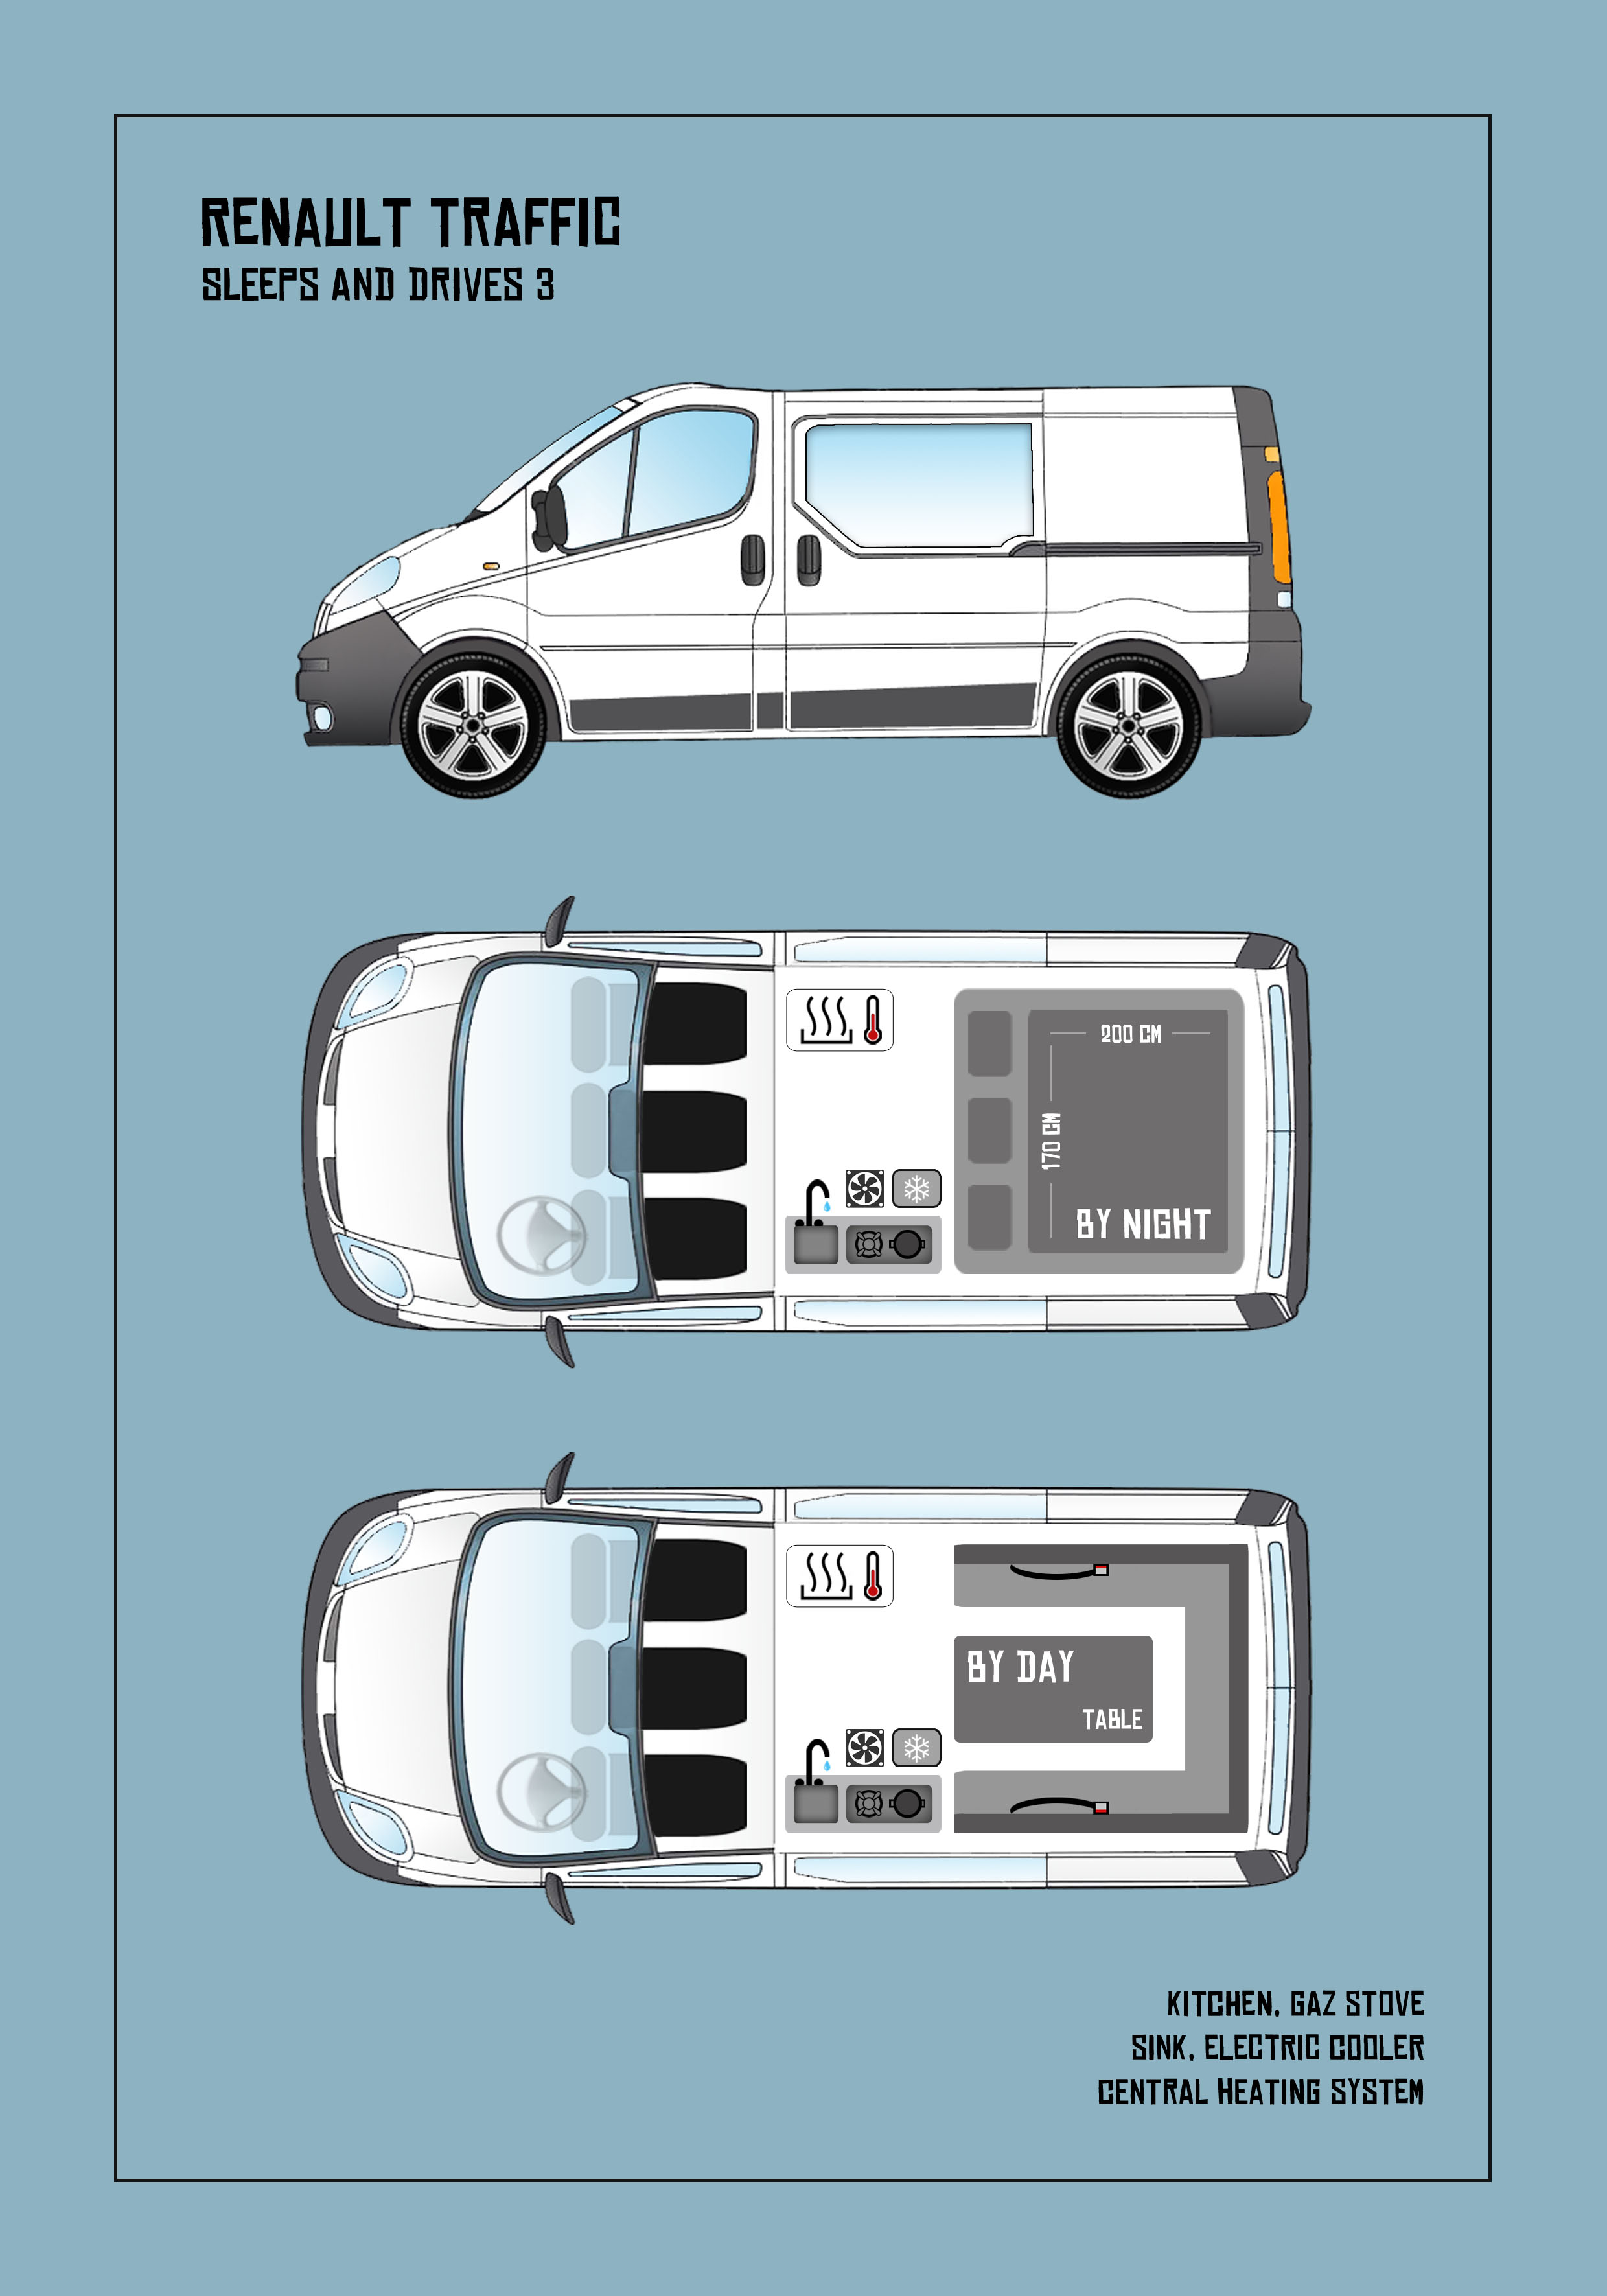 b manual renault trafic low roof or similar drives 5 sleeps 3. Black Bedroom Furniture Sets. Home Design Ideas